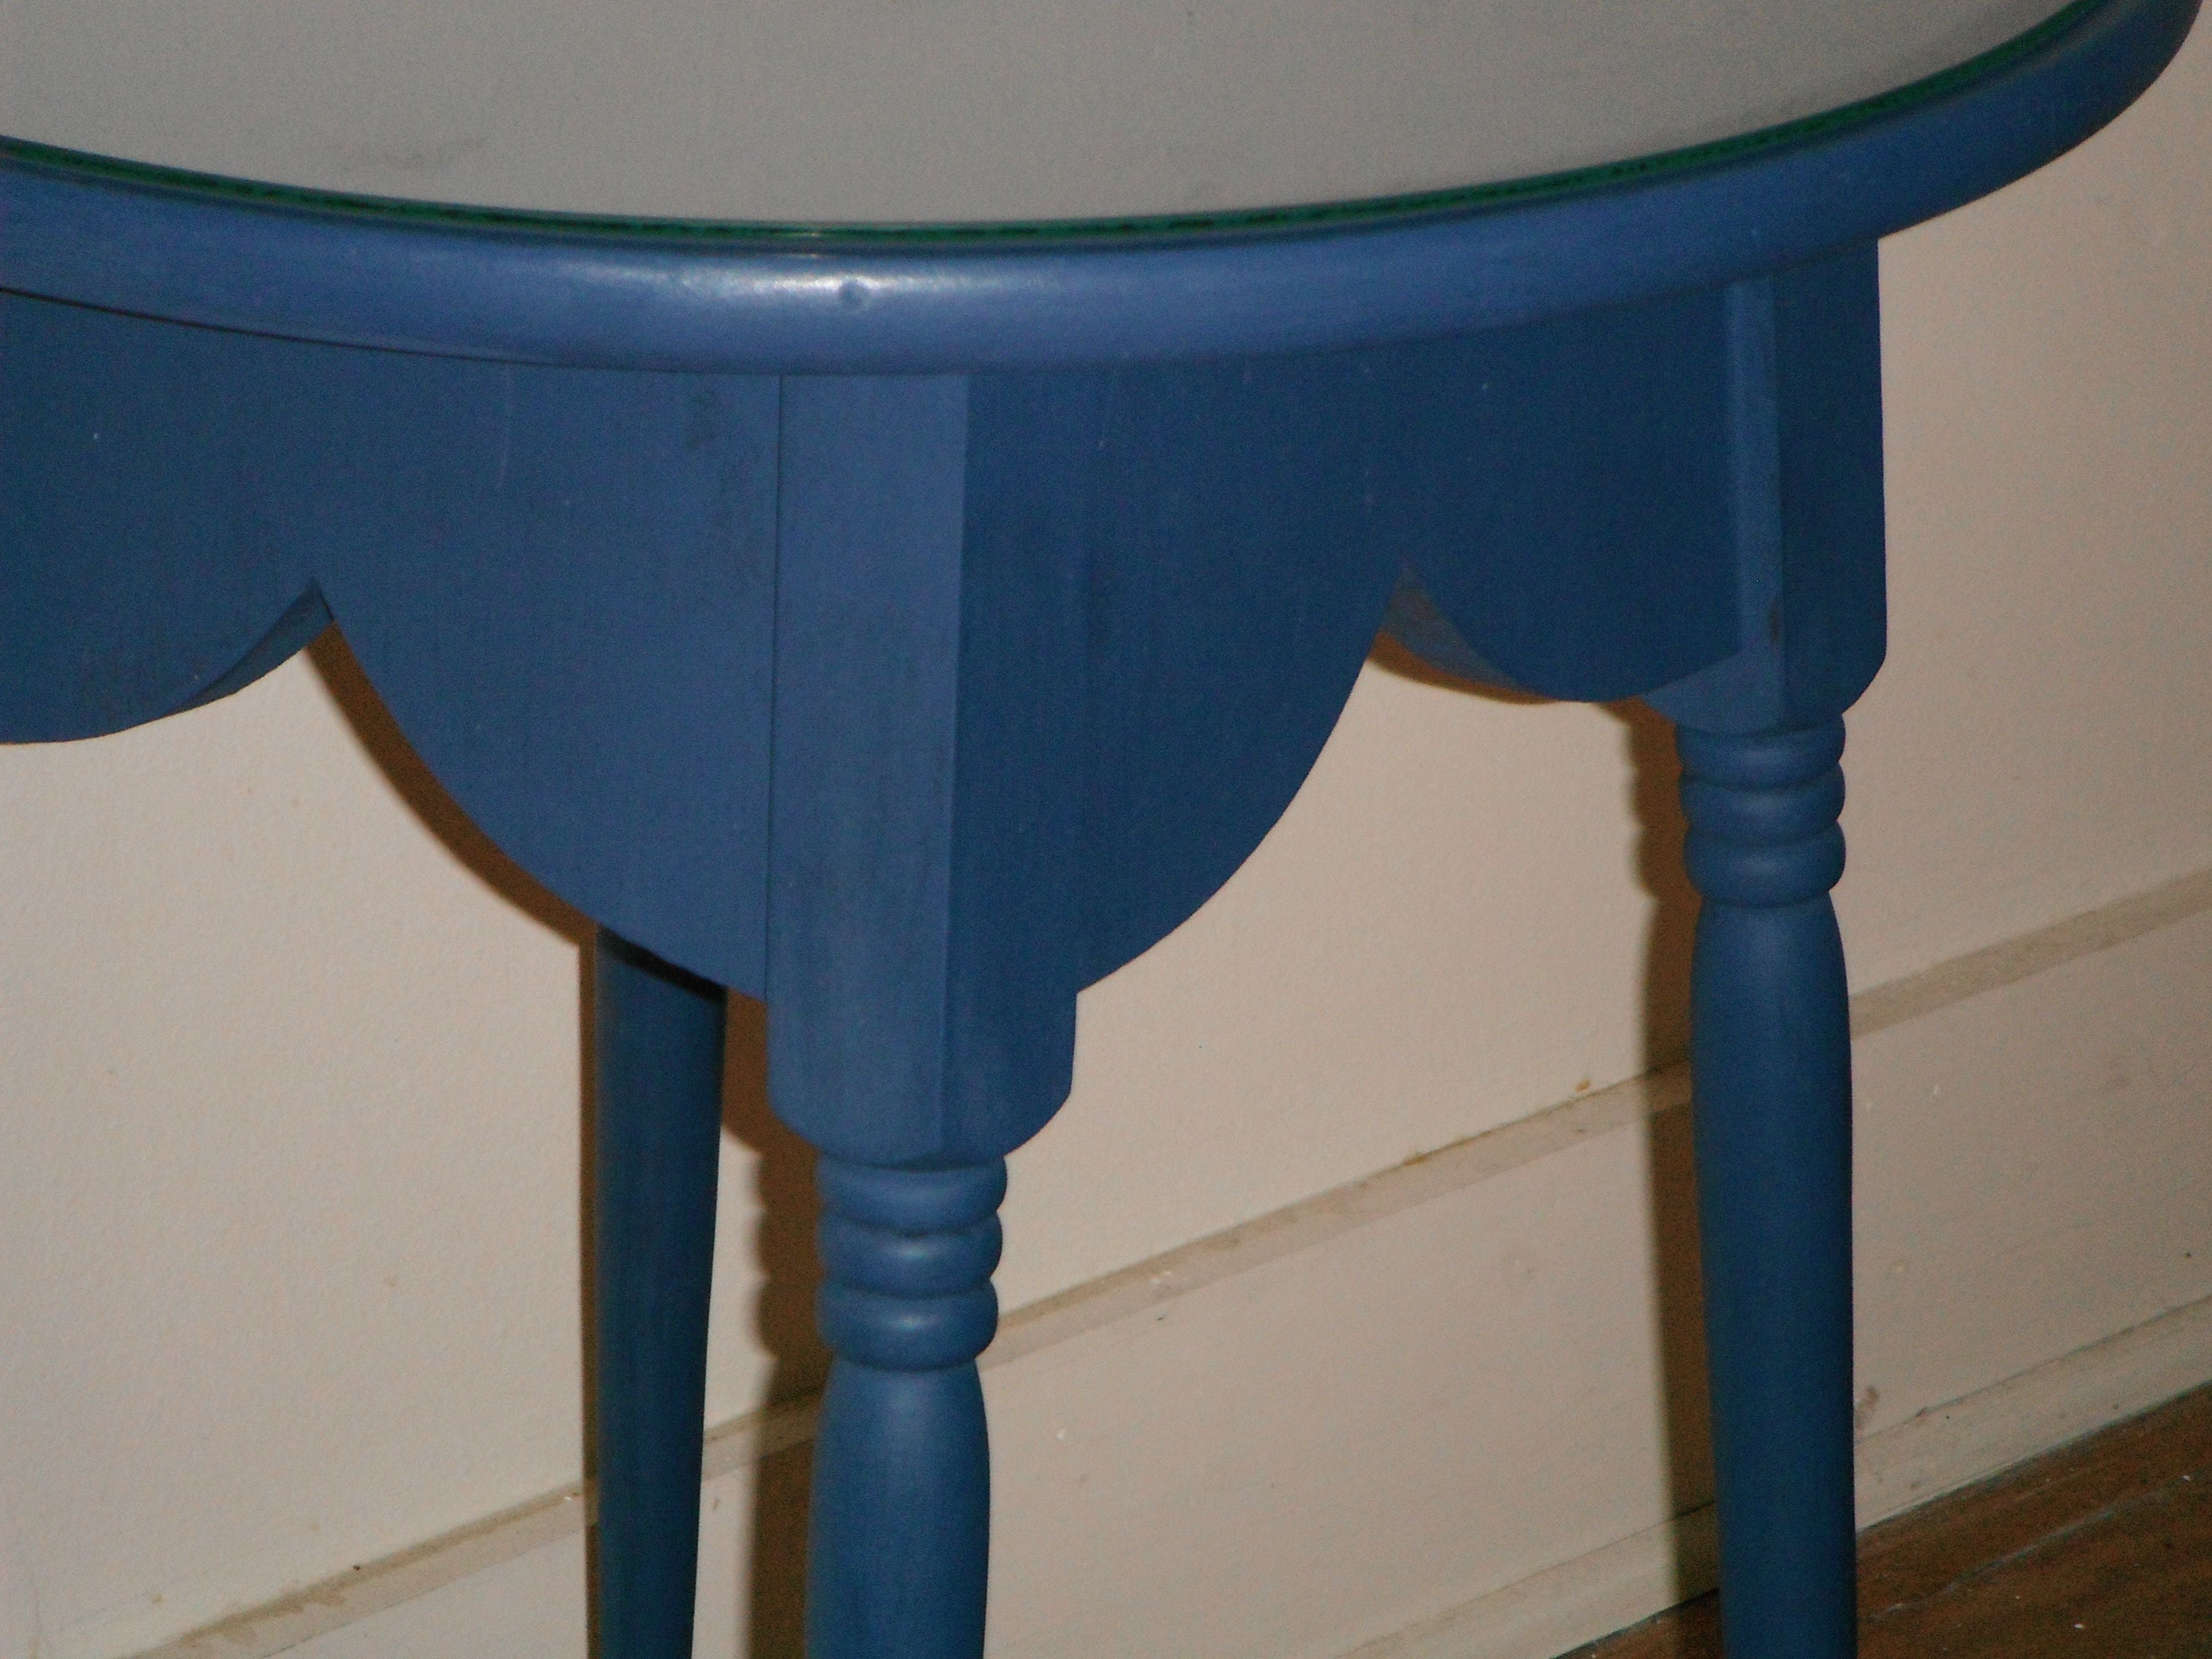 French Country Round Kitchen Table: French Country Round Butler Accent Table